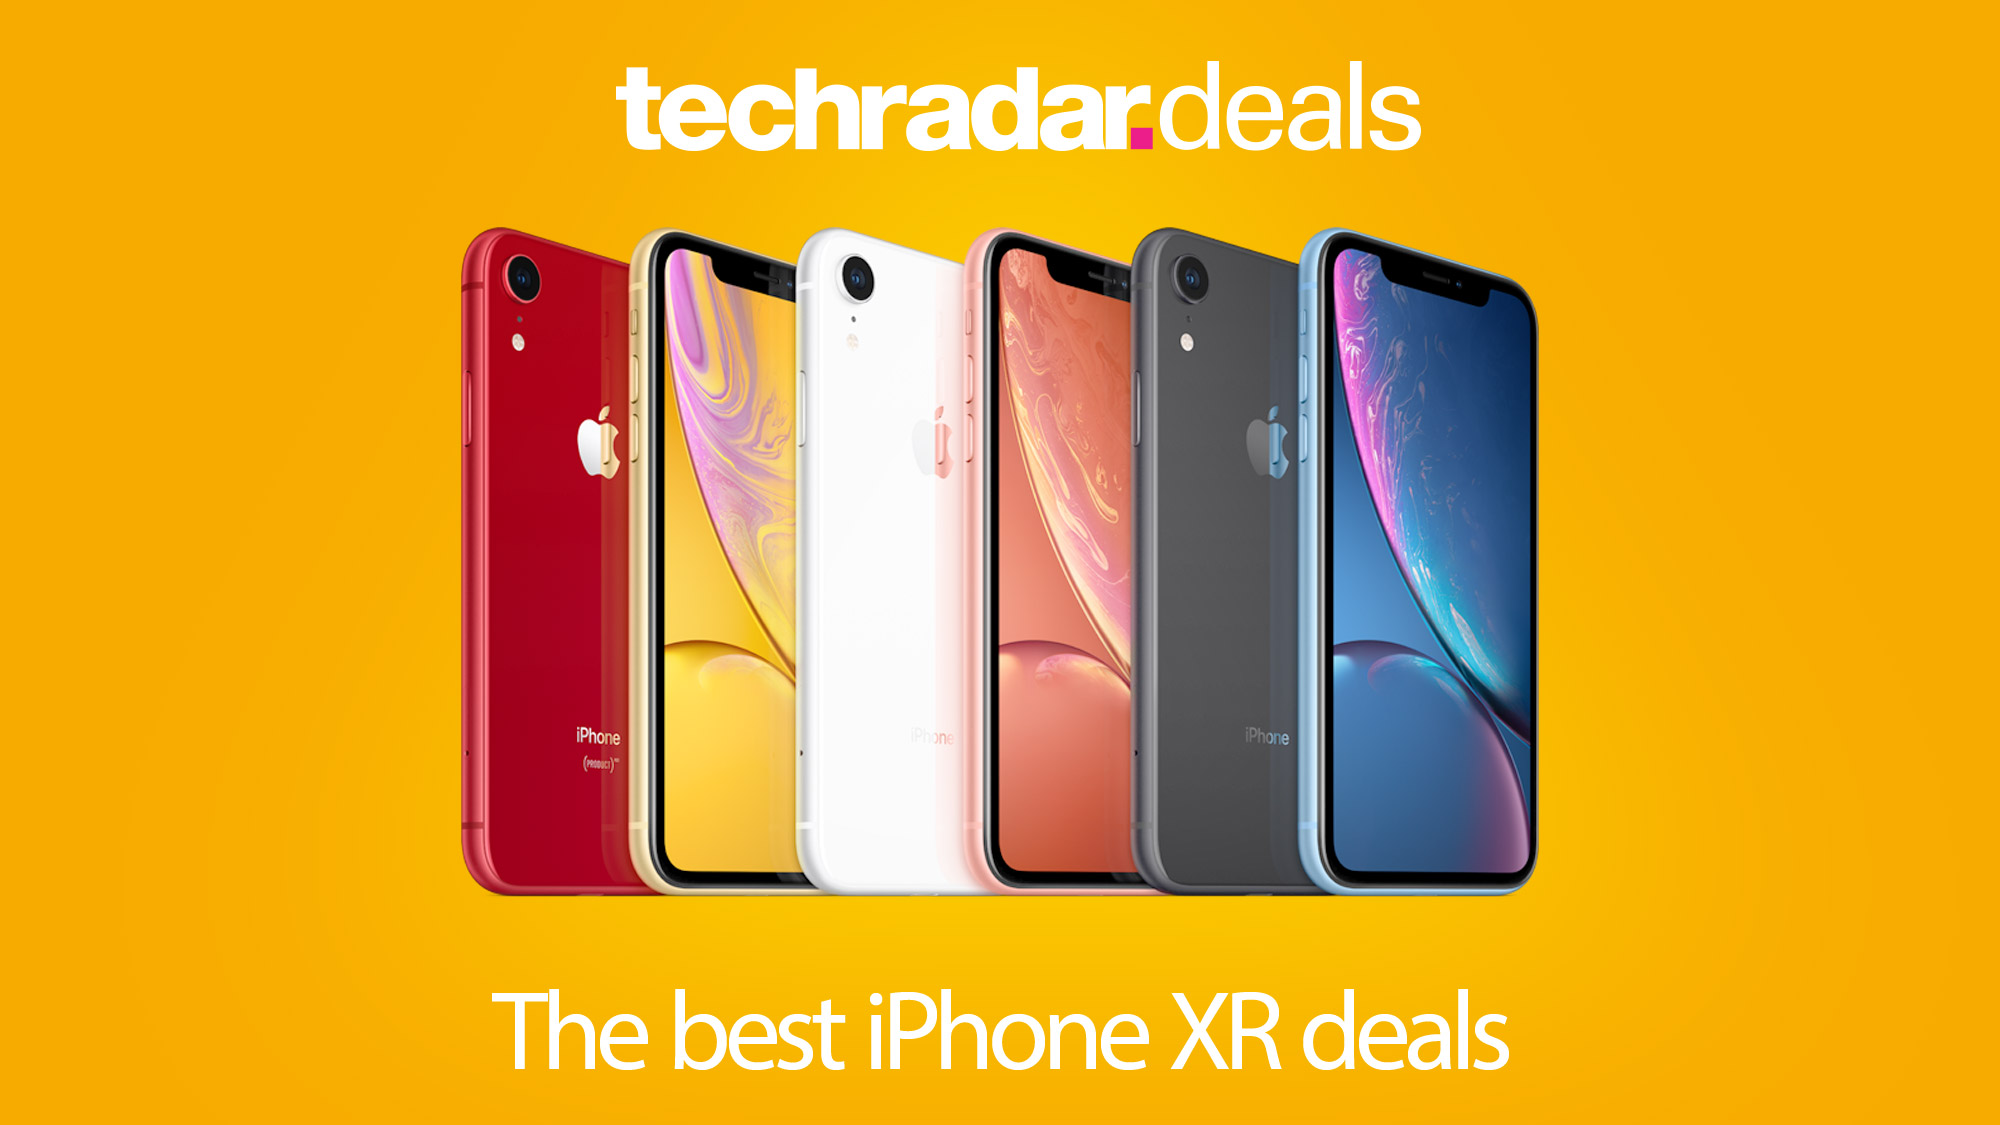 Iphone Xr Deals Get The Best Prices And Deals For Black Friday And Cyber Monday 2020 Techradar